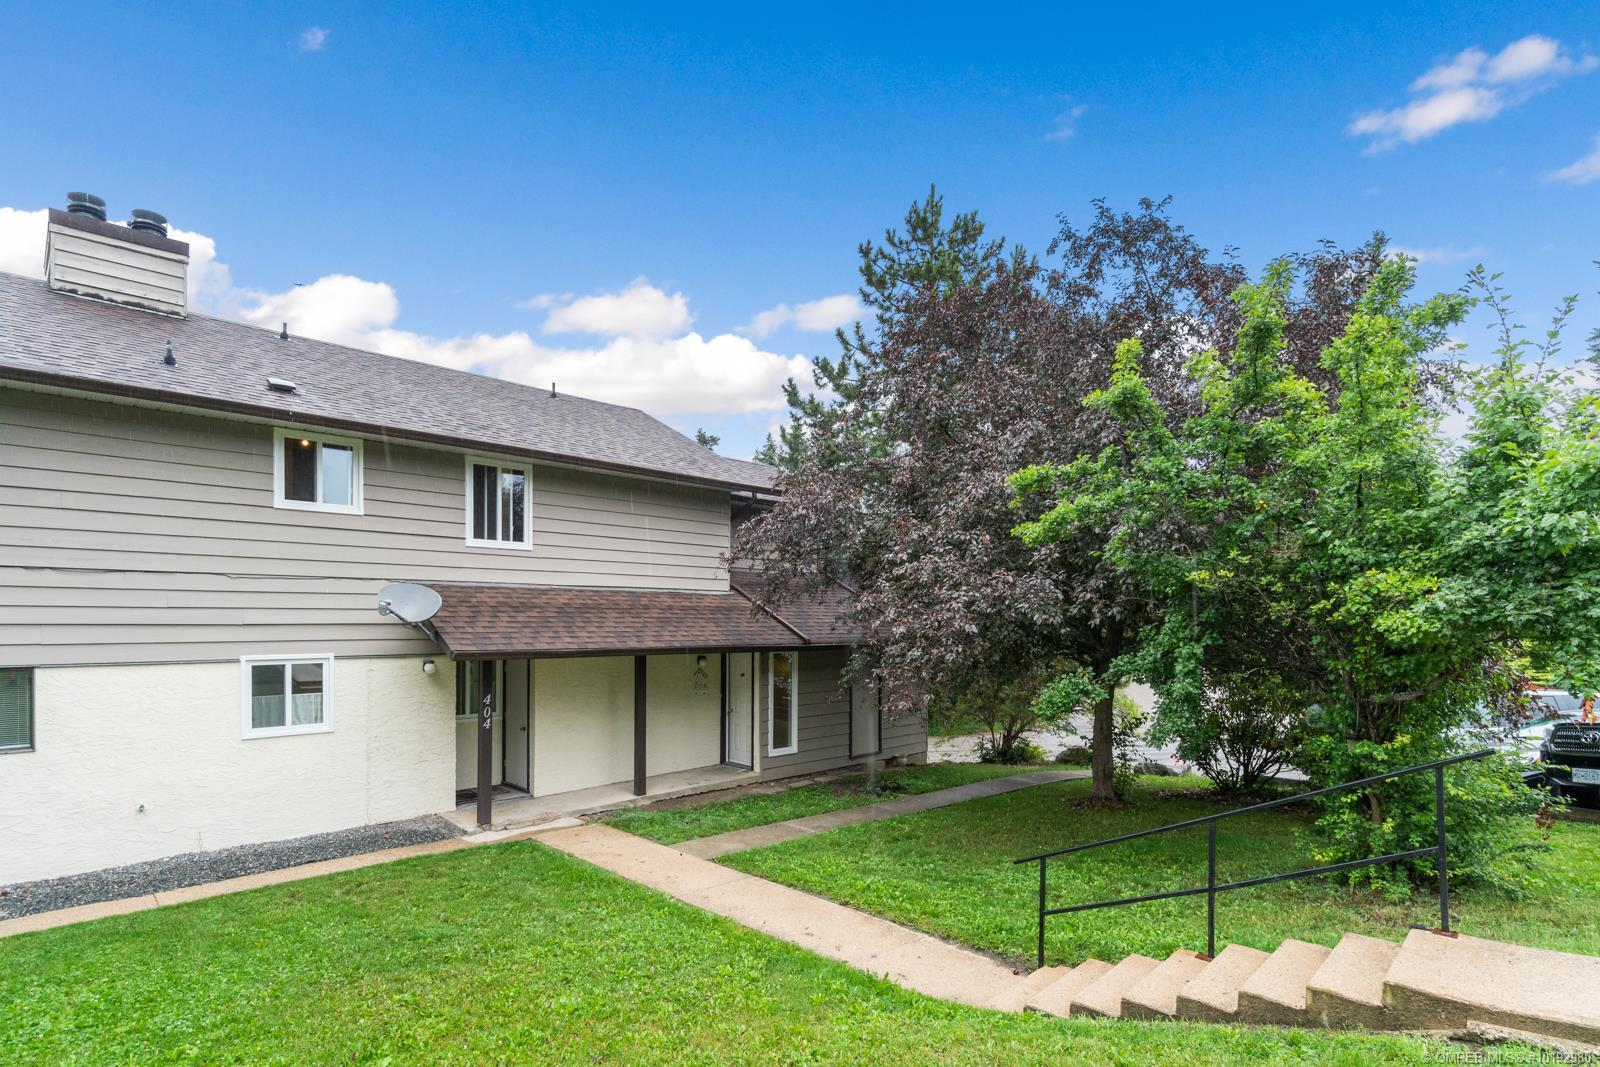 #406 1451 1 Avenue, NE, Salmon Arm, British Columbia, V1E1N8 (21245013)